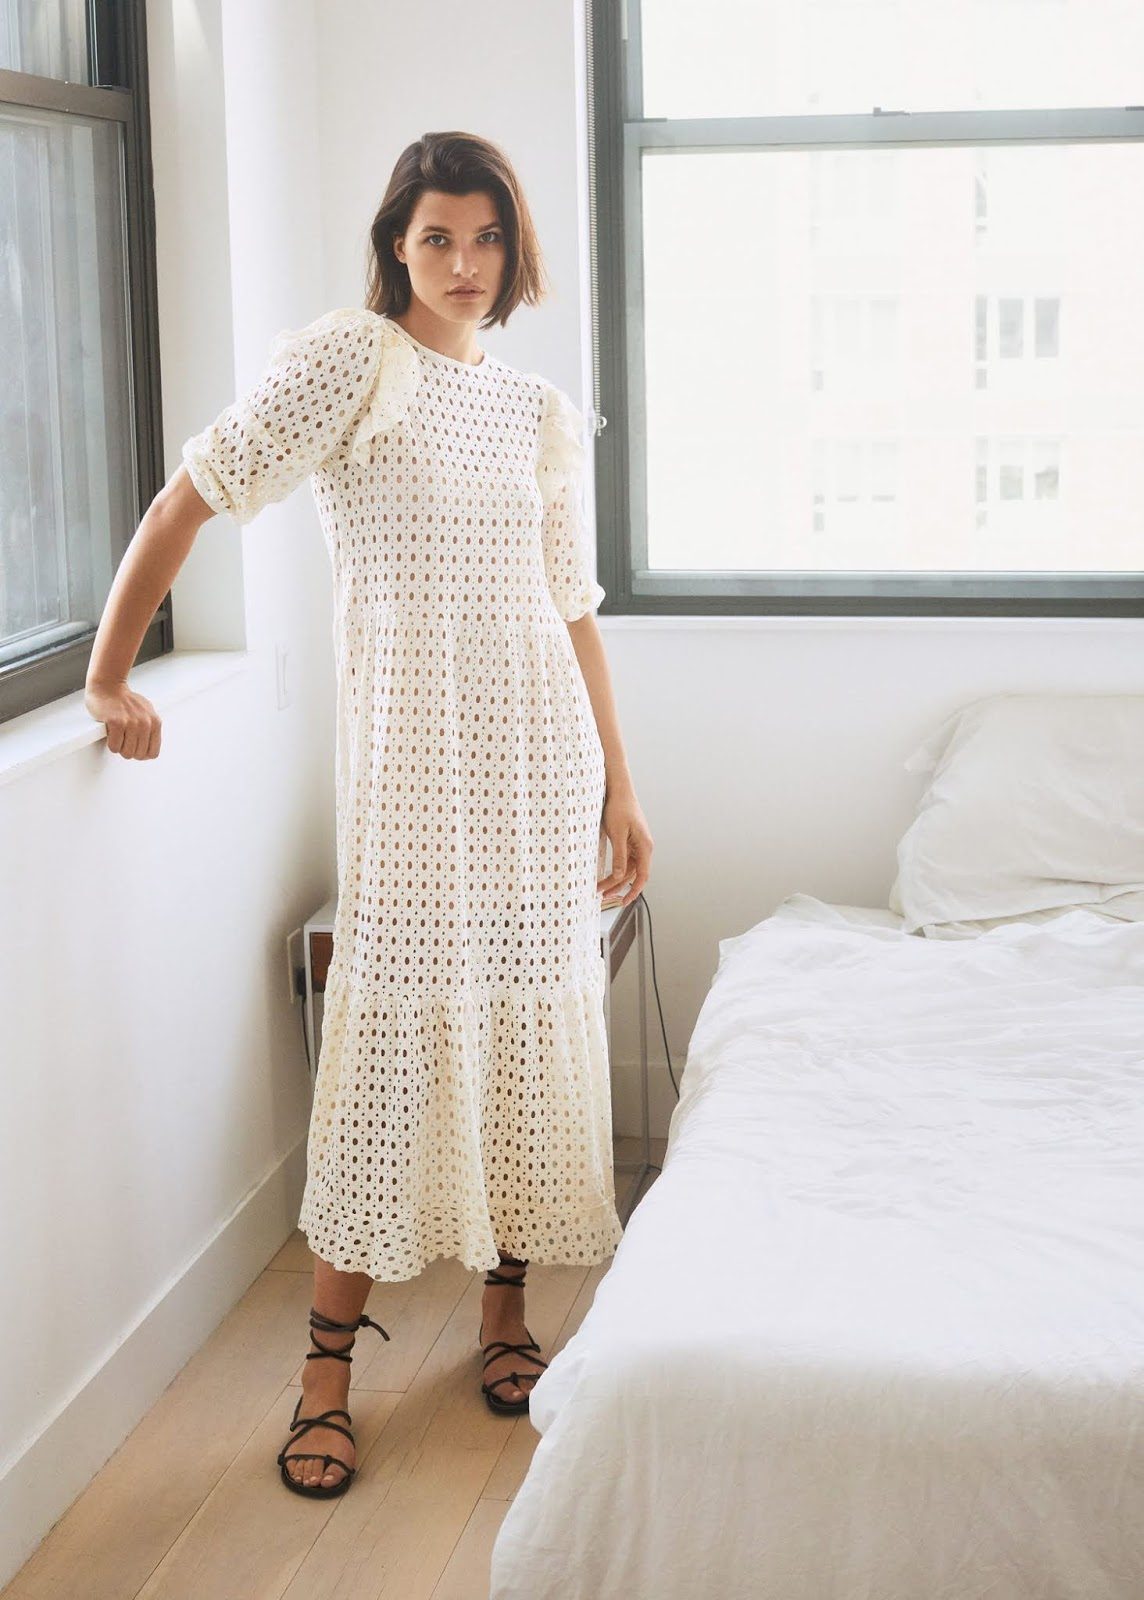 This Ruffled Open-Work Dress Is a Summer Must-Have